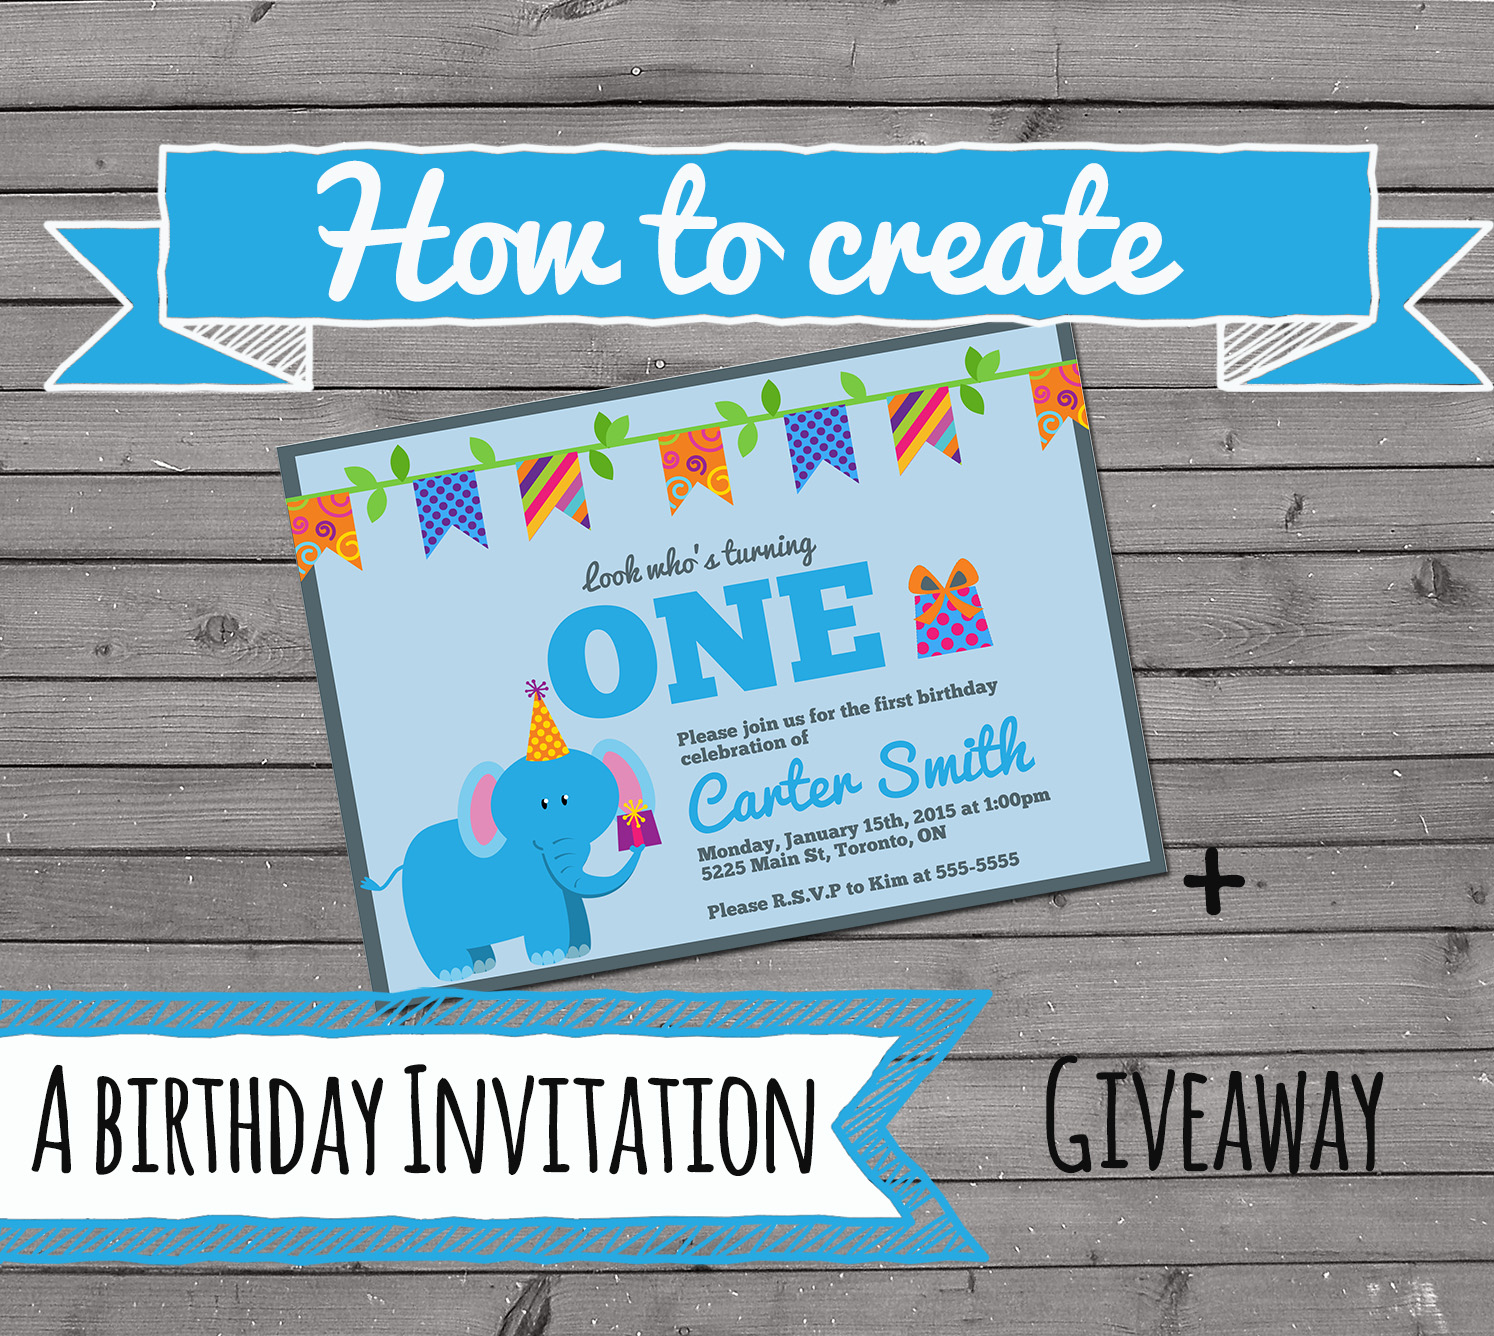 create your own photo birthday invitations ; How-to-create-your-own-birthday-invitation